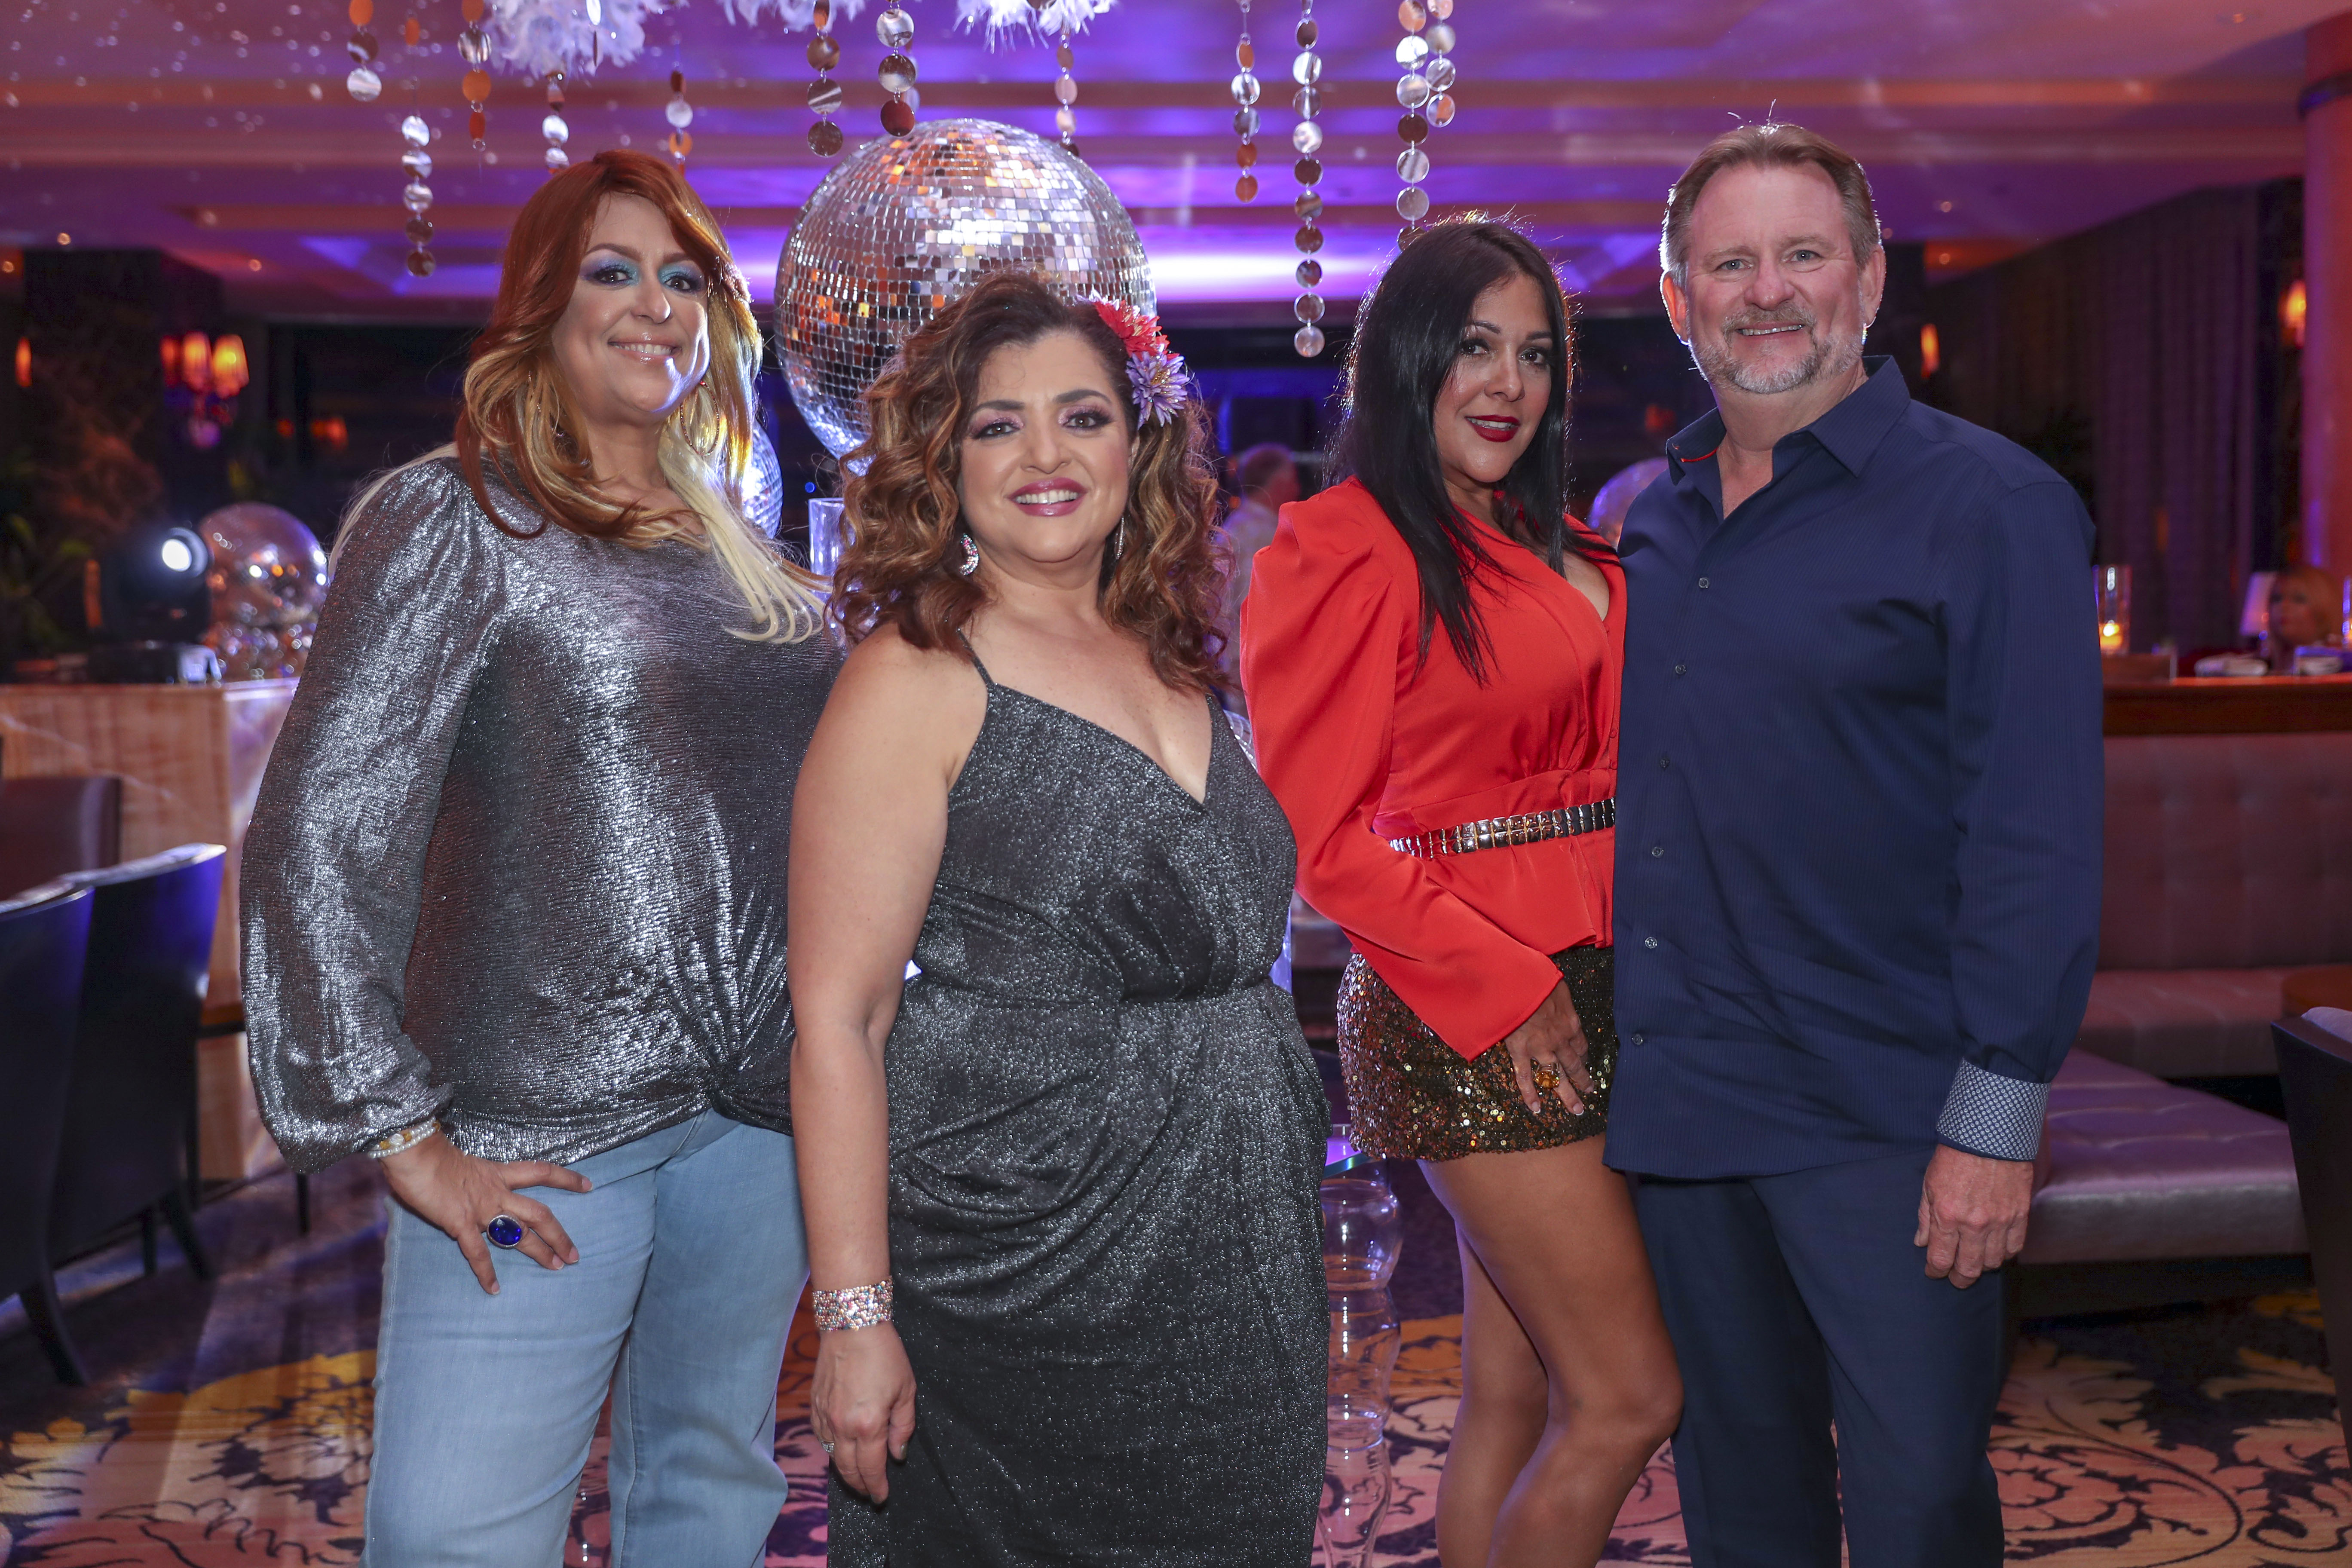 Delma Reyes, Marcelle Martell, Mary Mas y Mark Miller. (Suministrada)